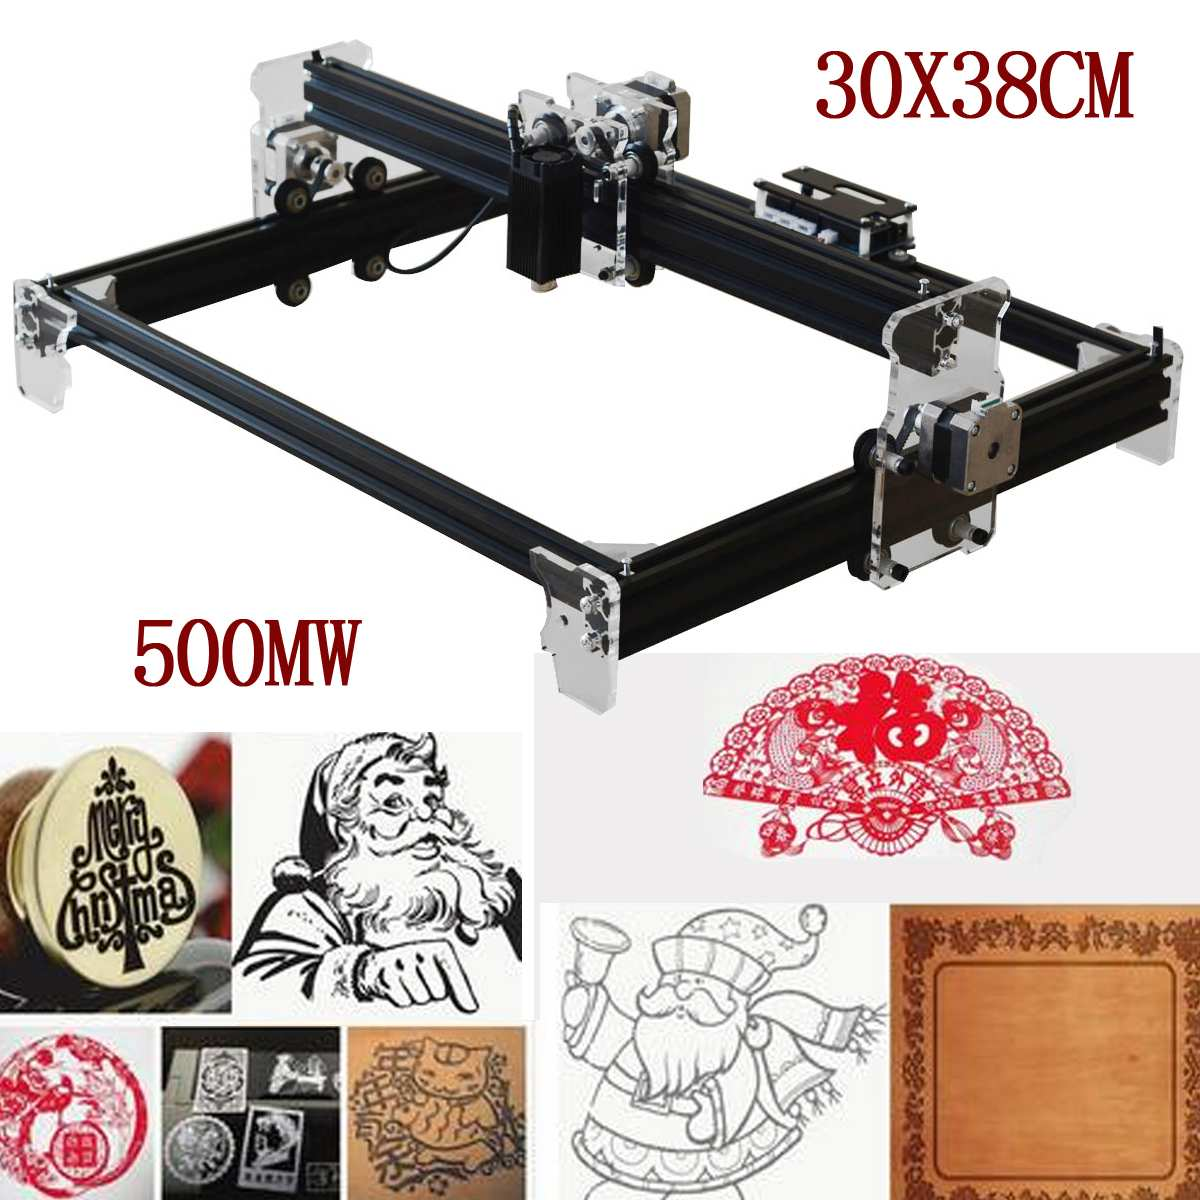 цена на 500MW/2500MW/5500MW A3 30X38CM DIY Mini Laser Engraver CNC DIY Logo Mark Printer Cutter Wood Router Carving Engraving Machine